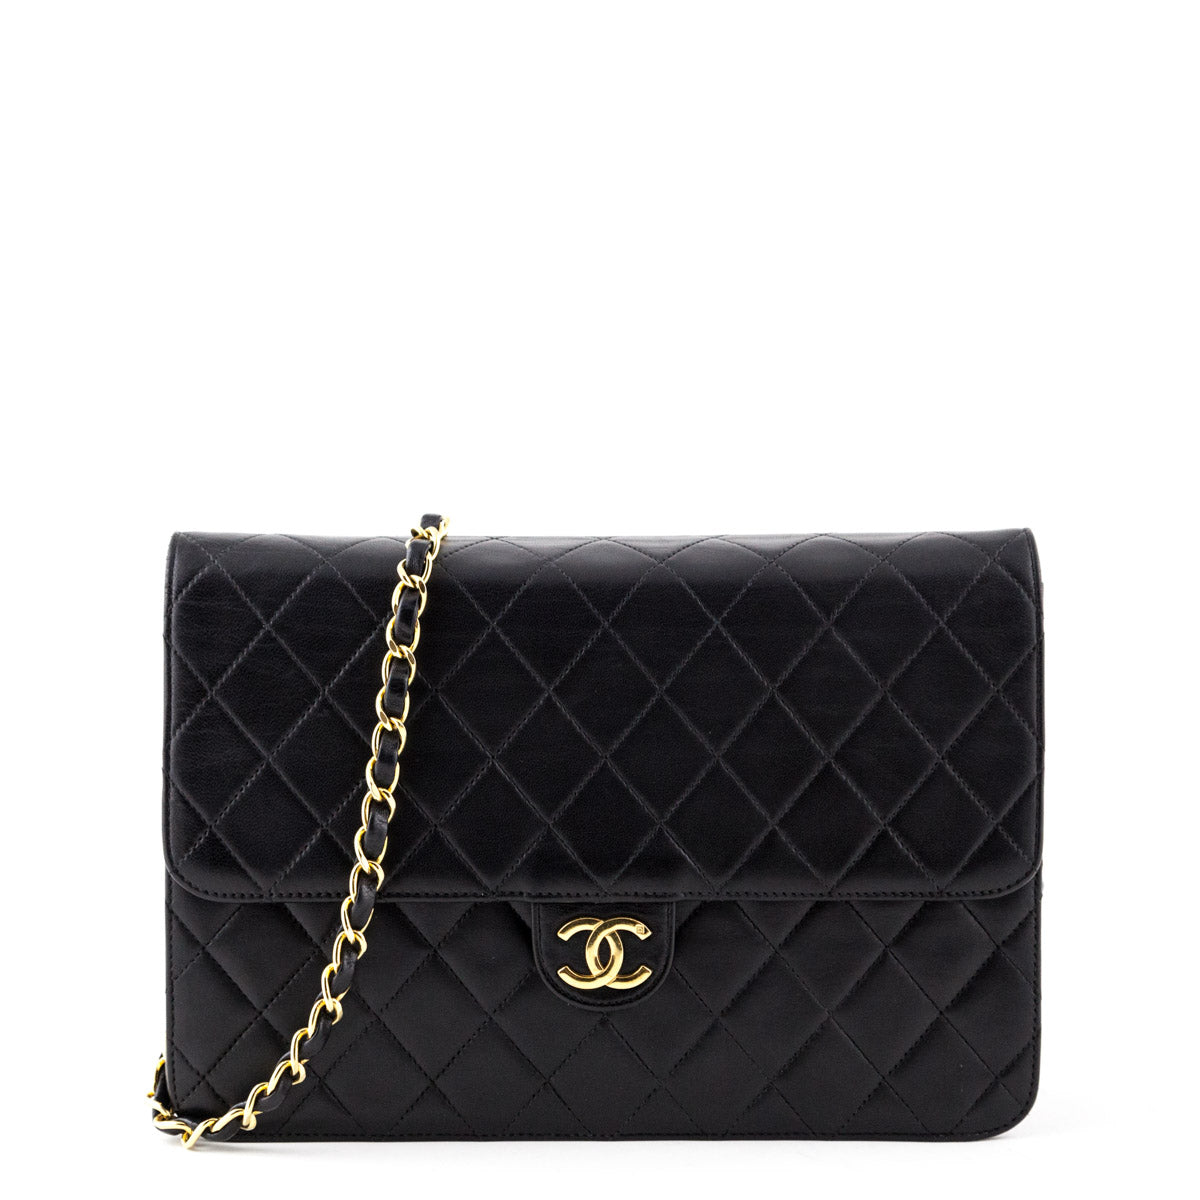 e905dc866b0d Chanel Black Lambskin Vintage Medium Classic Flap Bag - LOVE that BAG -  Preowned Authentic Designer ...